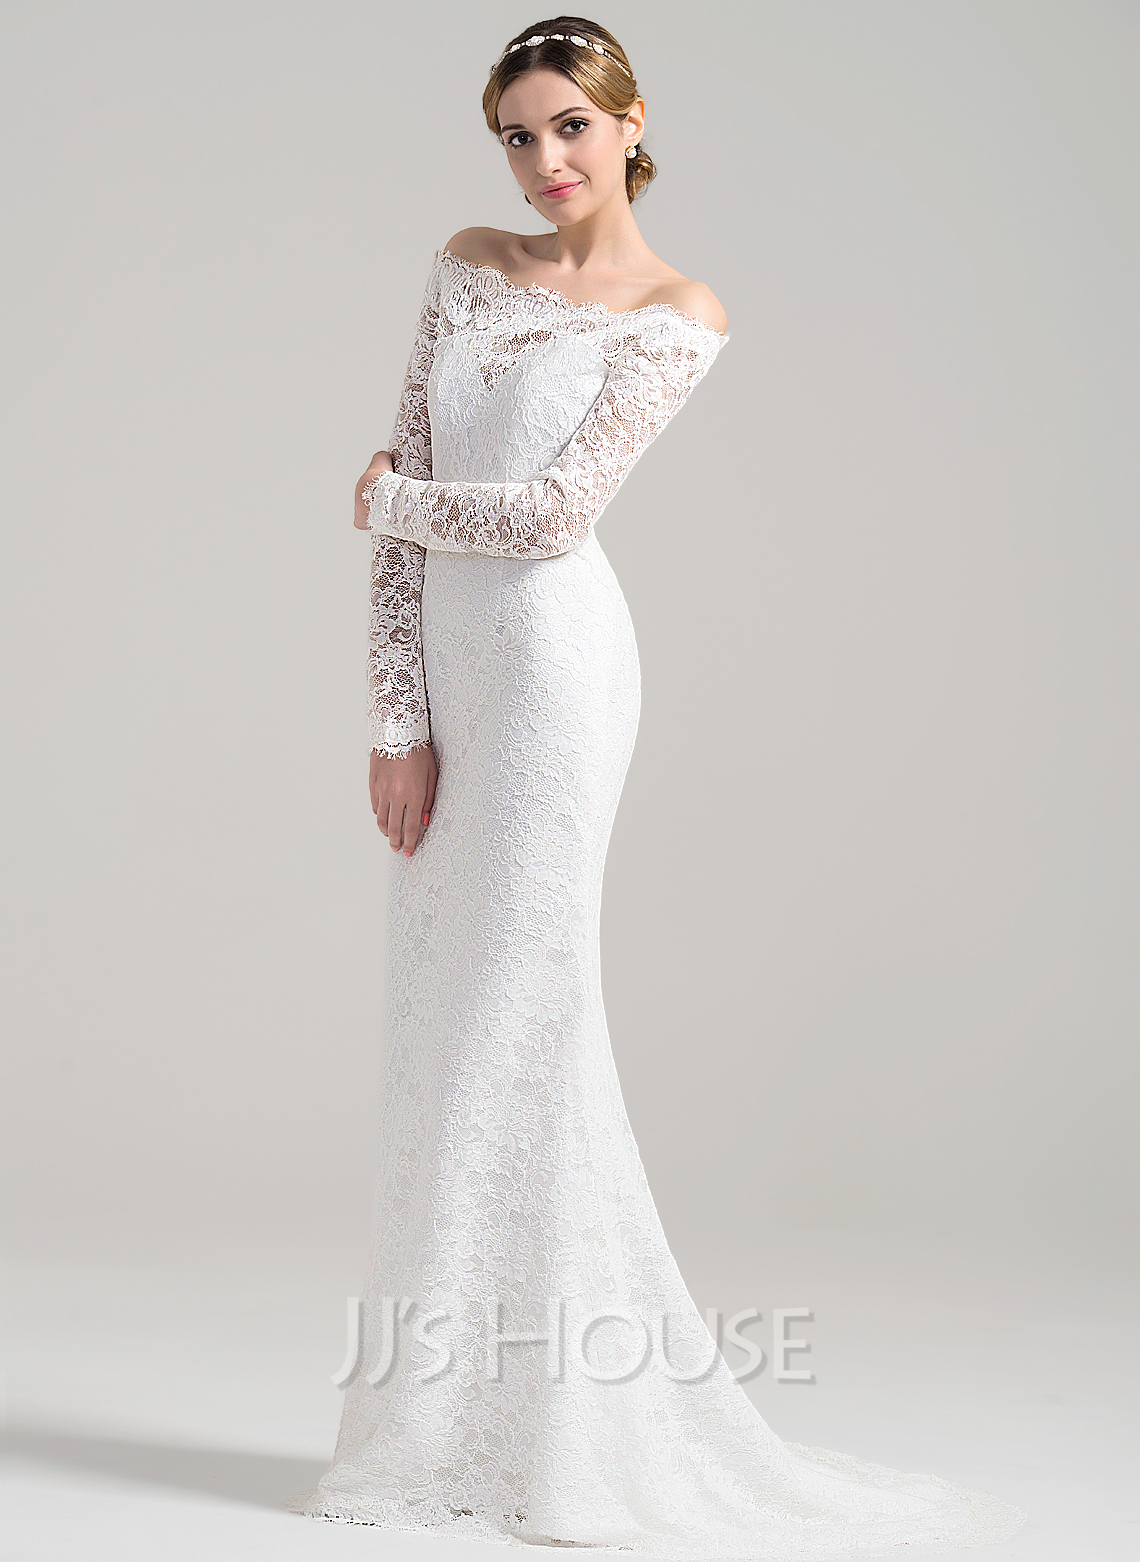 f7e165eeb3 Sheath/Column Off-the-Shoulder Sweep Train Lace Wedding Dress. Loading zoom